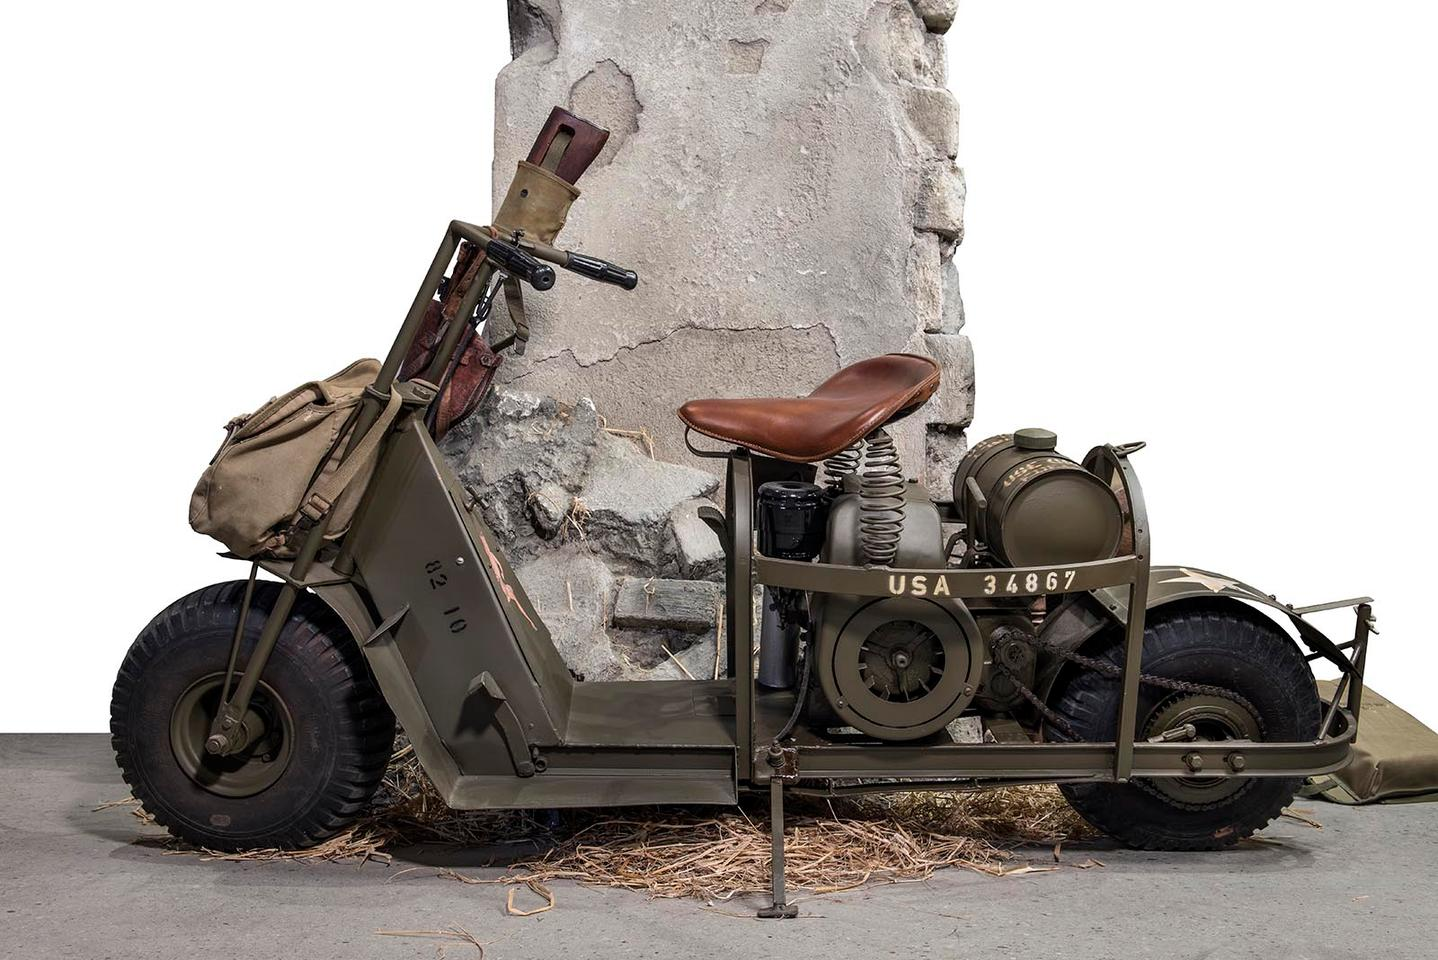 TheCushman M53-A motorcycle was specifically built to be delivered by glider or parachute behind enemy lines, and to give American marines instant 40 mph mobility and a range of 100 miles. The D-Day sale saw Artcurial set a world record pricefor the Cushman M53-A of EUR€142,600(US$159,101) against a pre-sale estimate of€10, 000 to €20,000. The bike is now one of the 100 most expensive motorcycles ever sold at auction.